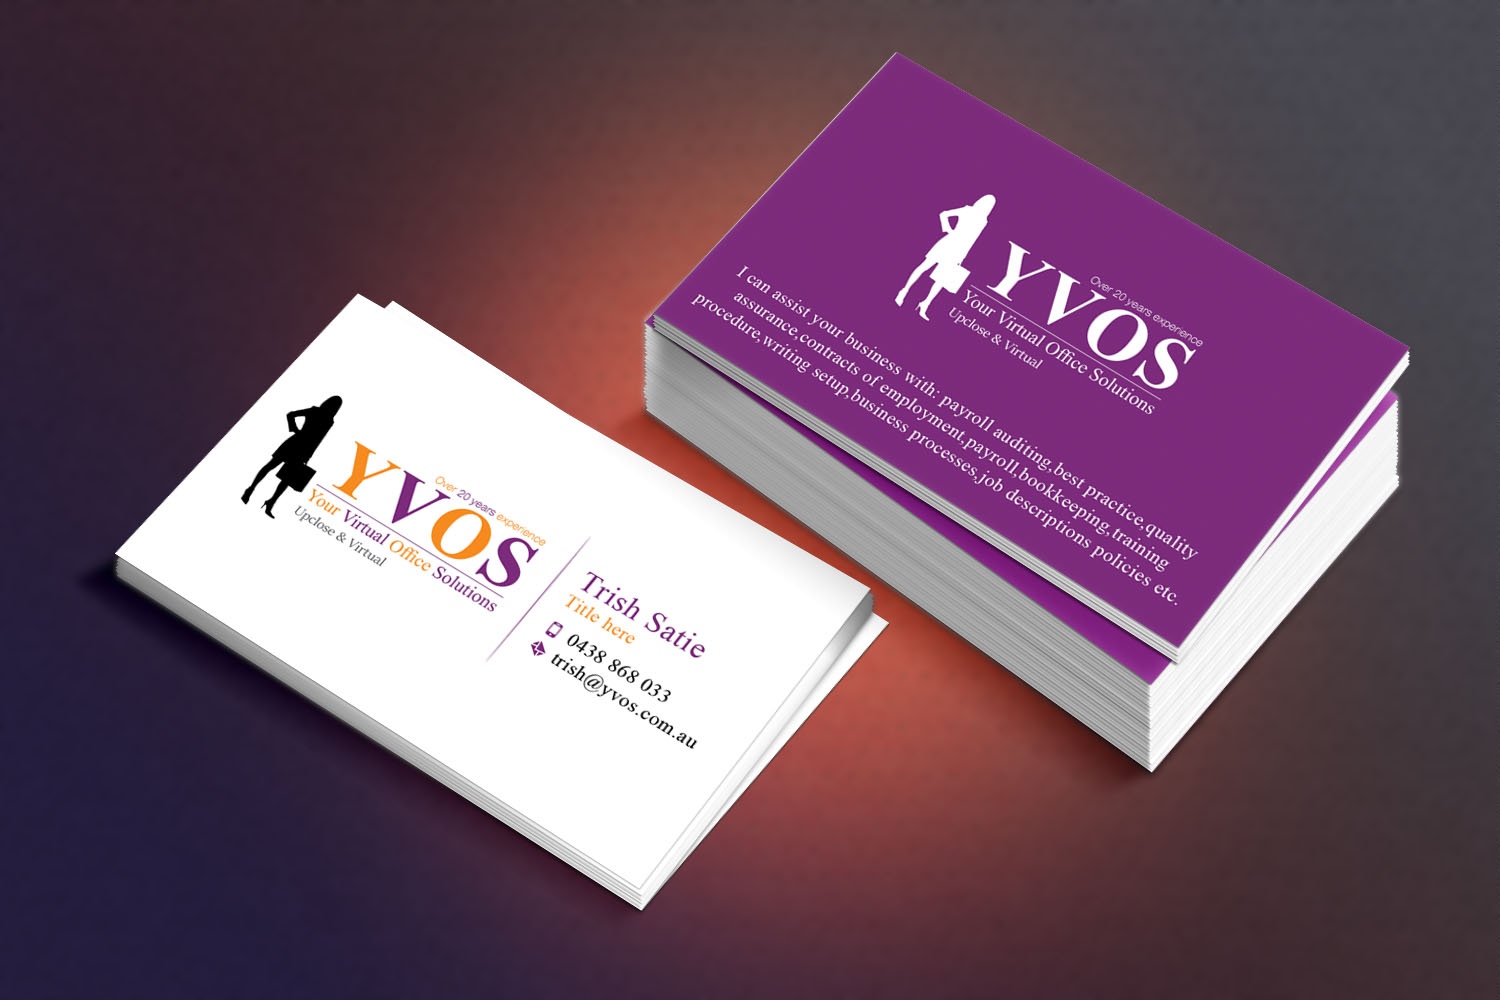 Modern professional business business card design for yvos your business card design by sandaruwan for yvos your virtual office solutions design 6822502 reheart Image collections